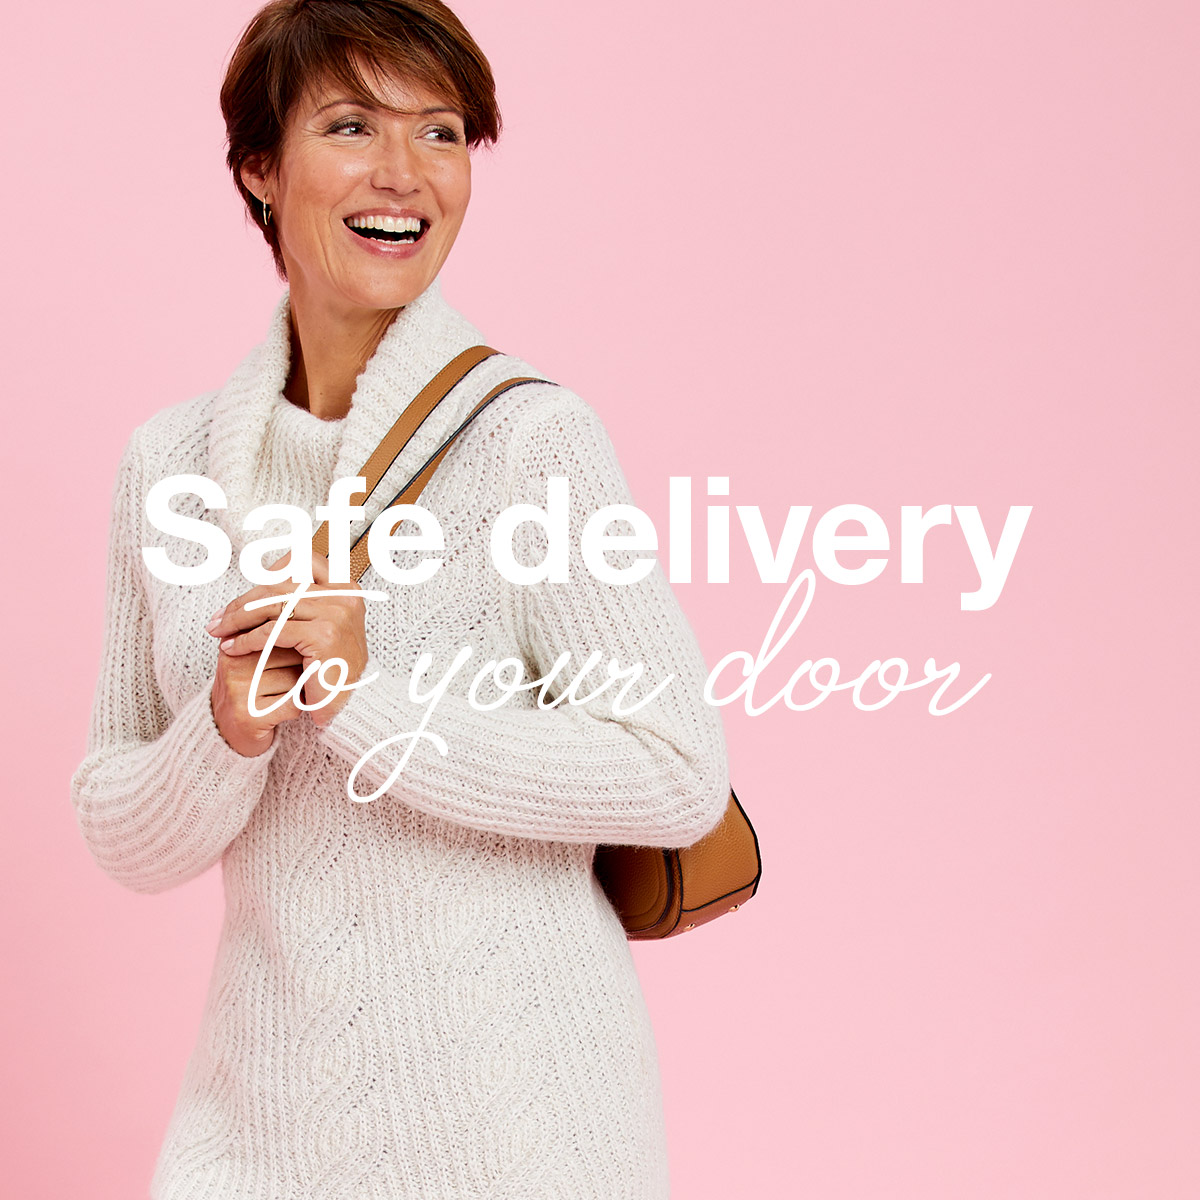 Delivering safely to your door You can also choose your safe place for a delivery or a neighbour and we don't need a signature. We'll take a photo instead and pop a card through your door so you know your parcels arrived and where to find it.